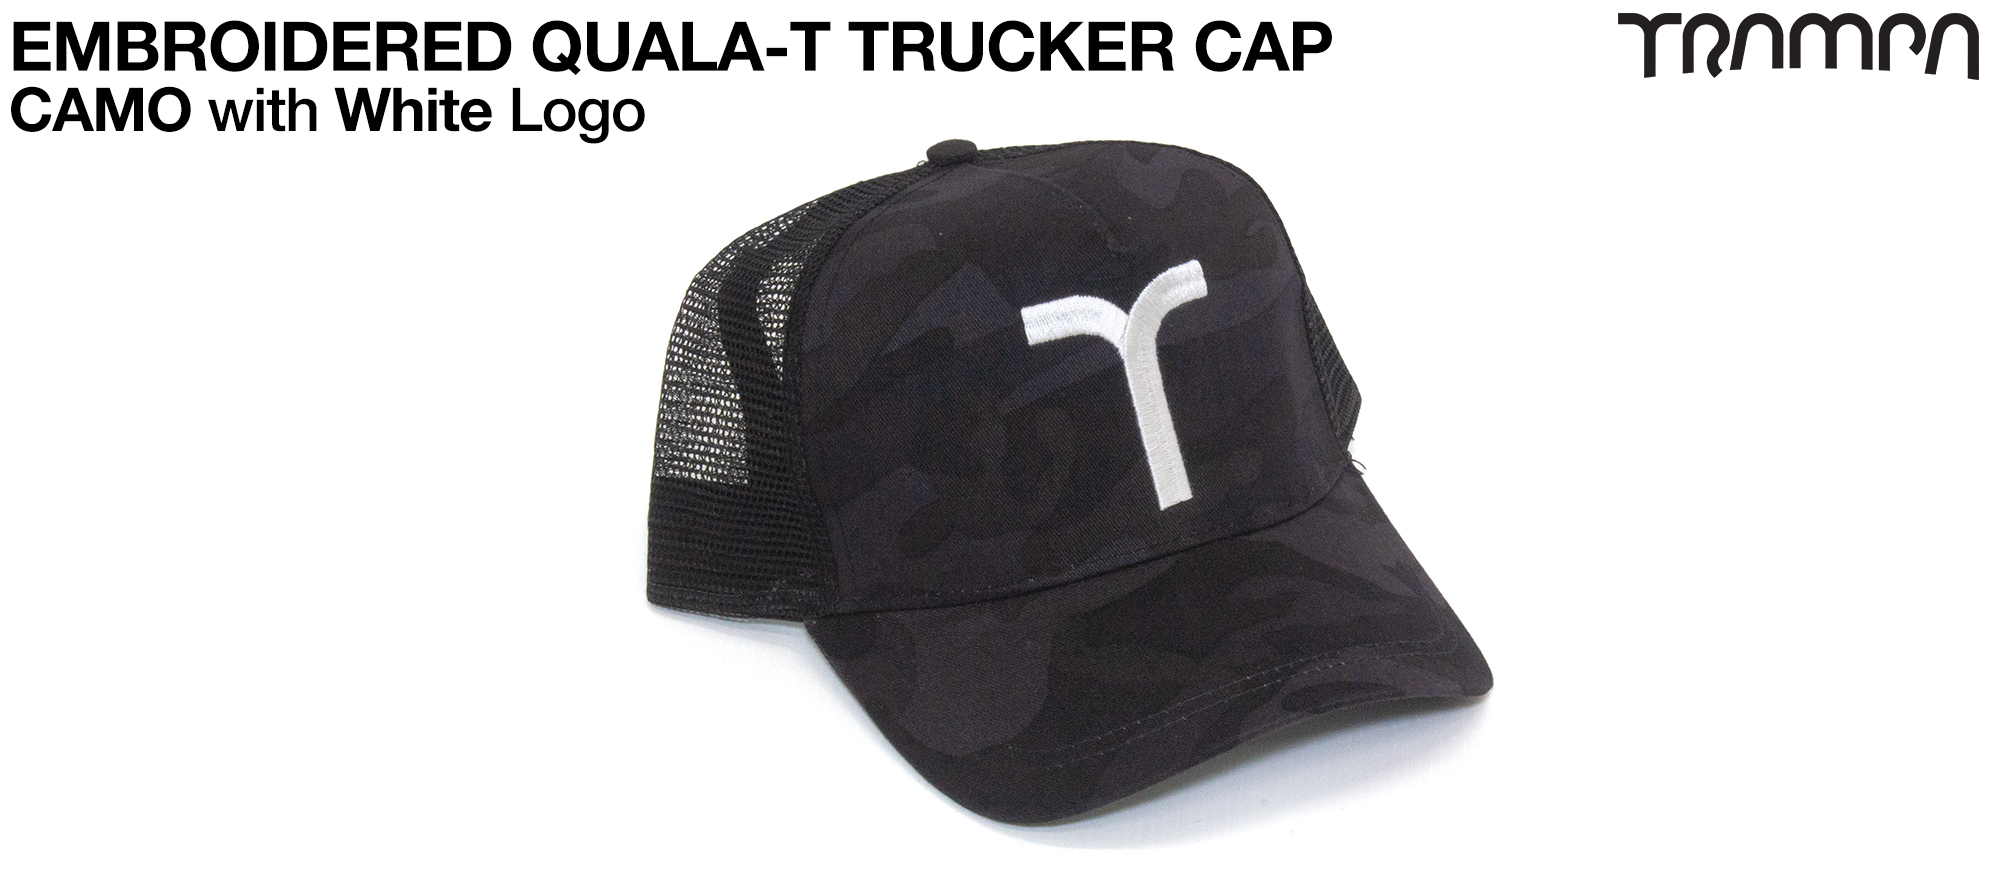 CAMO TRUCKER Cap with WHITE QUALA-T logo embroidered